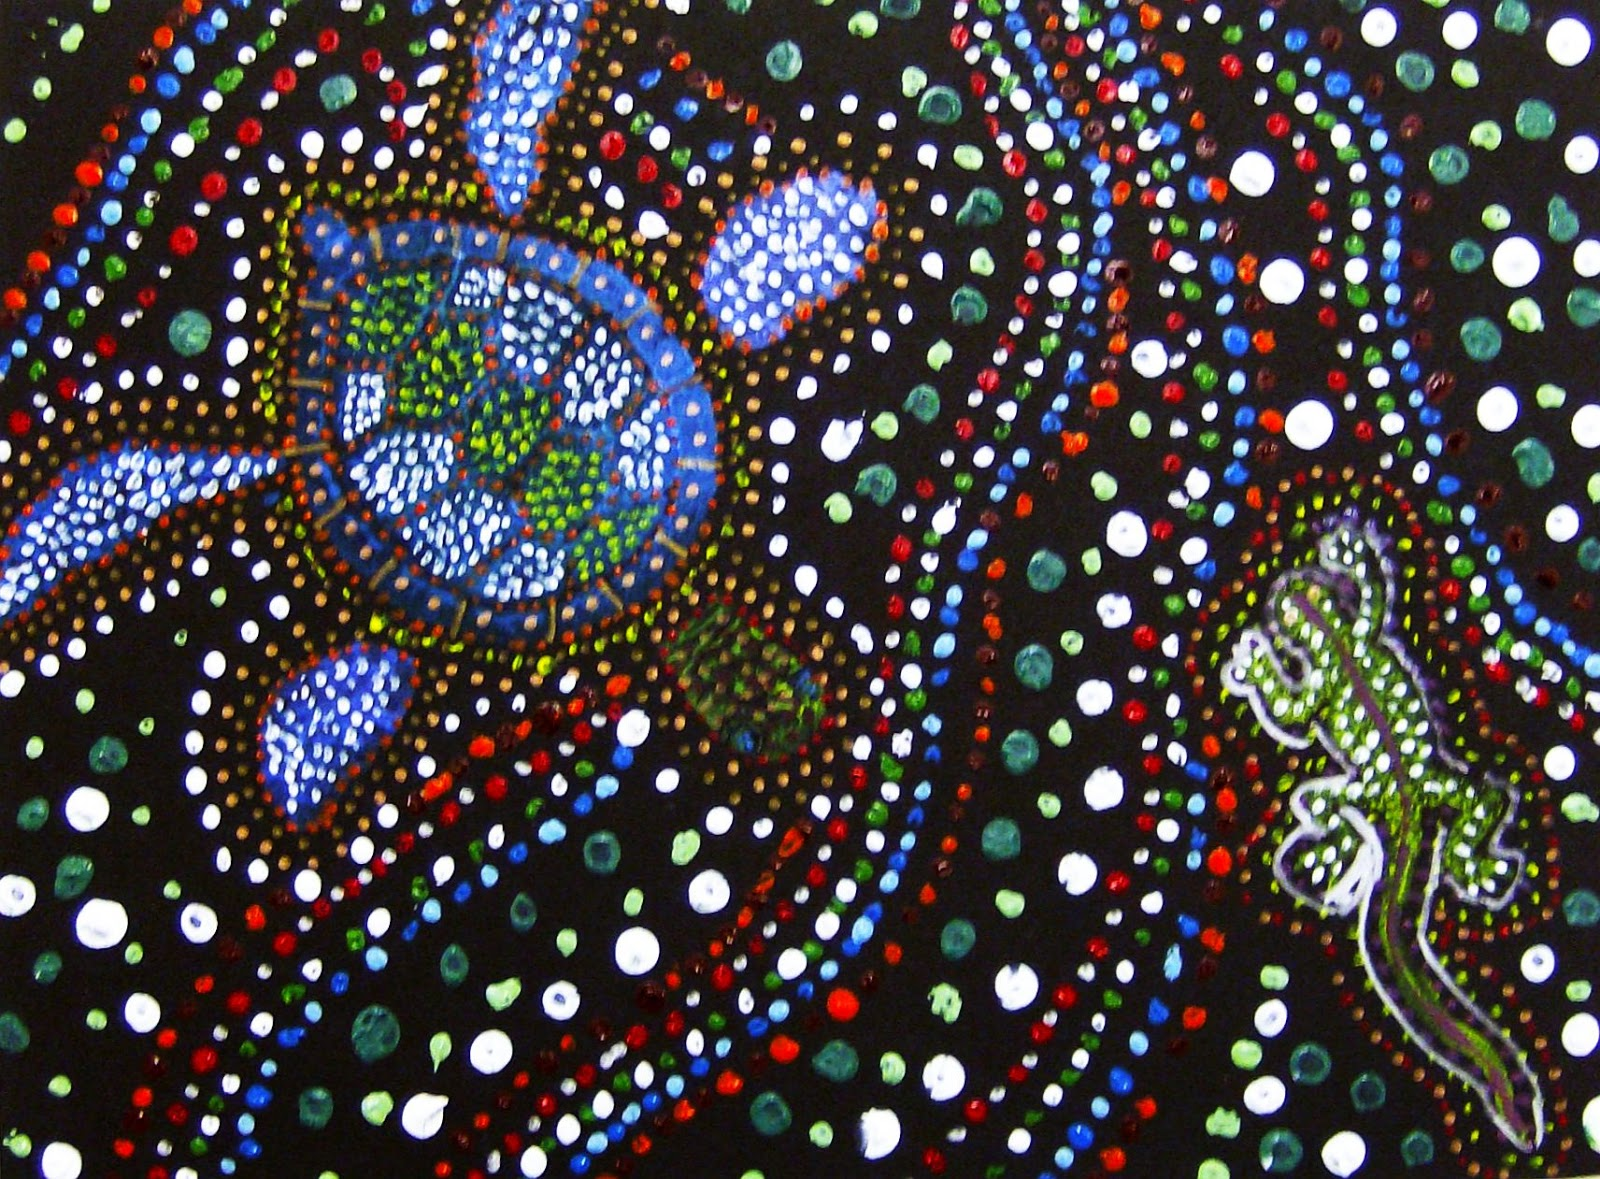 Blackfoot art center aboriginal artwork aboriginal art of australia is the oldest art form still practiced today it is very unusual compared to other art forms and quite interesting to look at solutioingenieria Choice Image